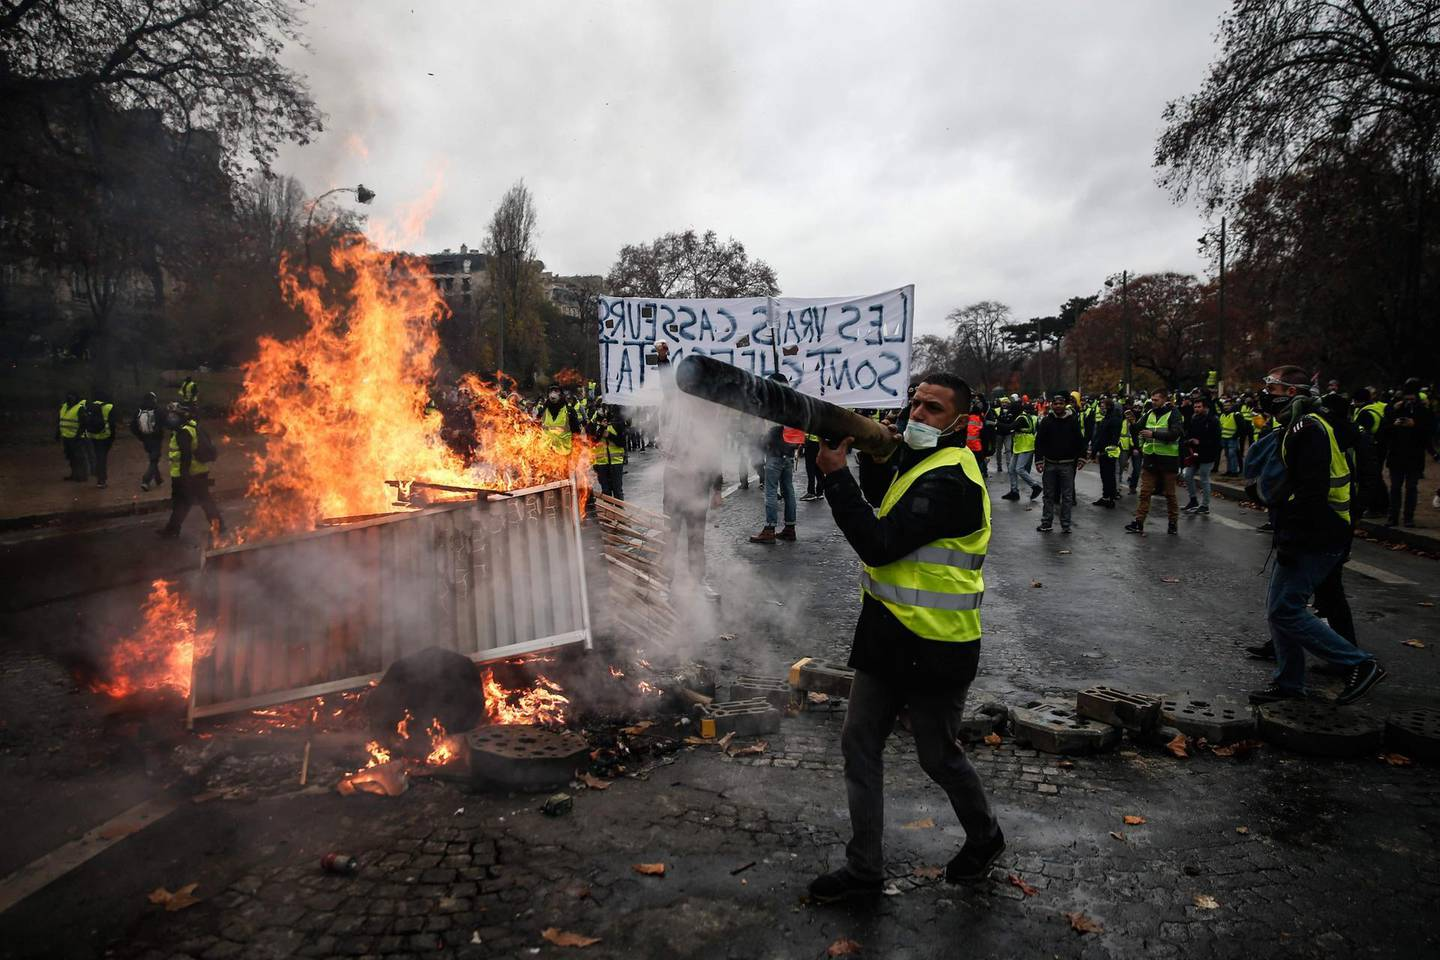 TOPSHOT - Protesters build a barricade during a protest of Yellow vests (Gilets jaunes) against rising oil prices and living costs, on December 1, 2018 in Paris.   / AFP / Abdulmonam EASSA